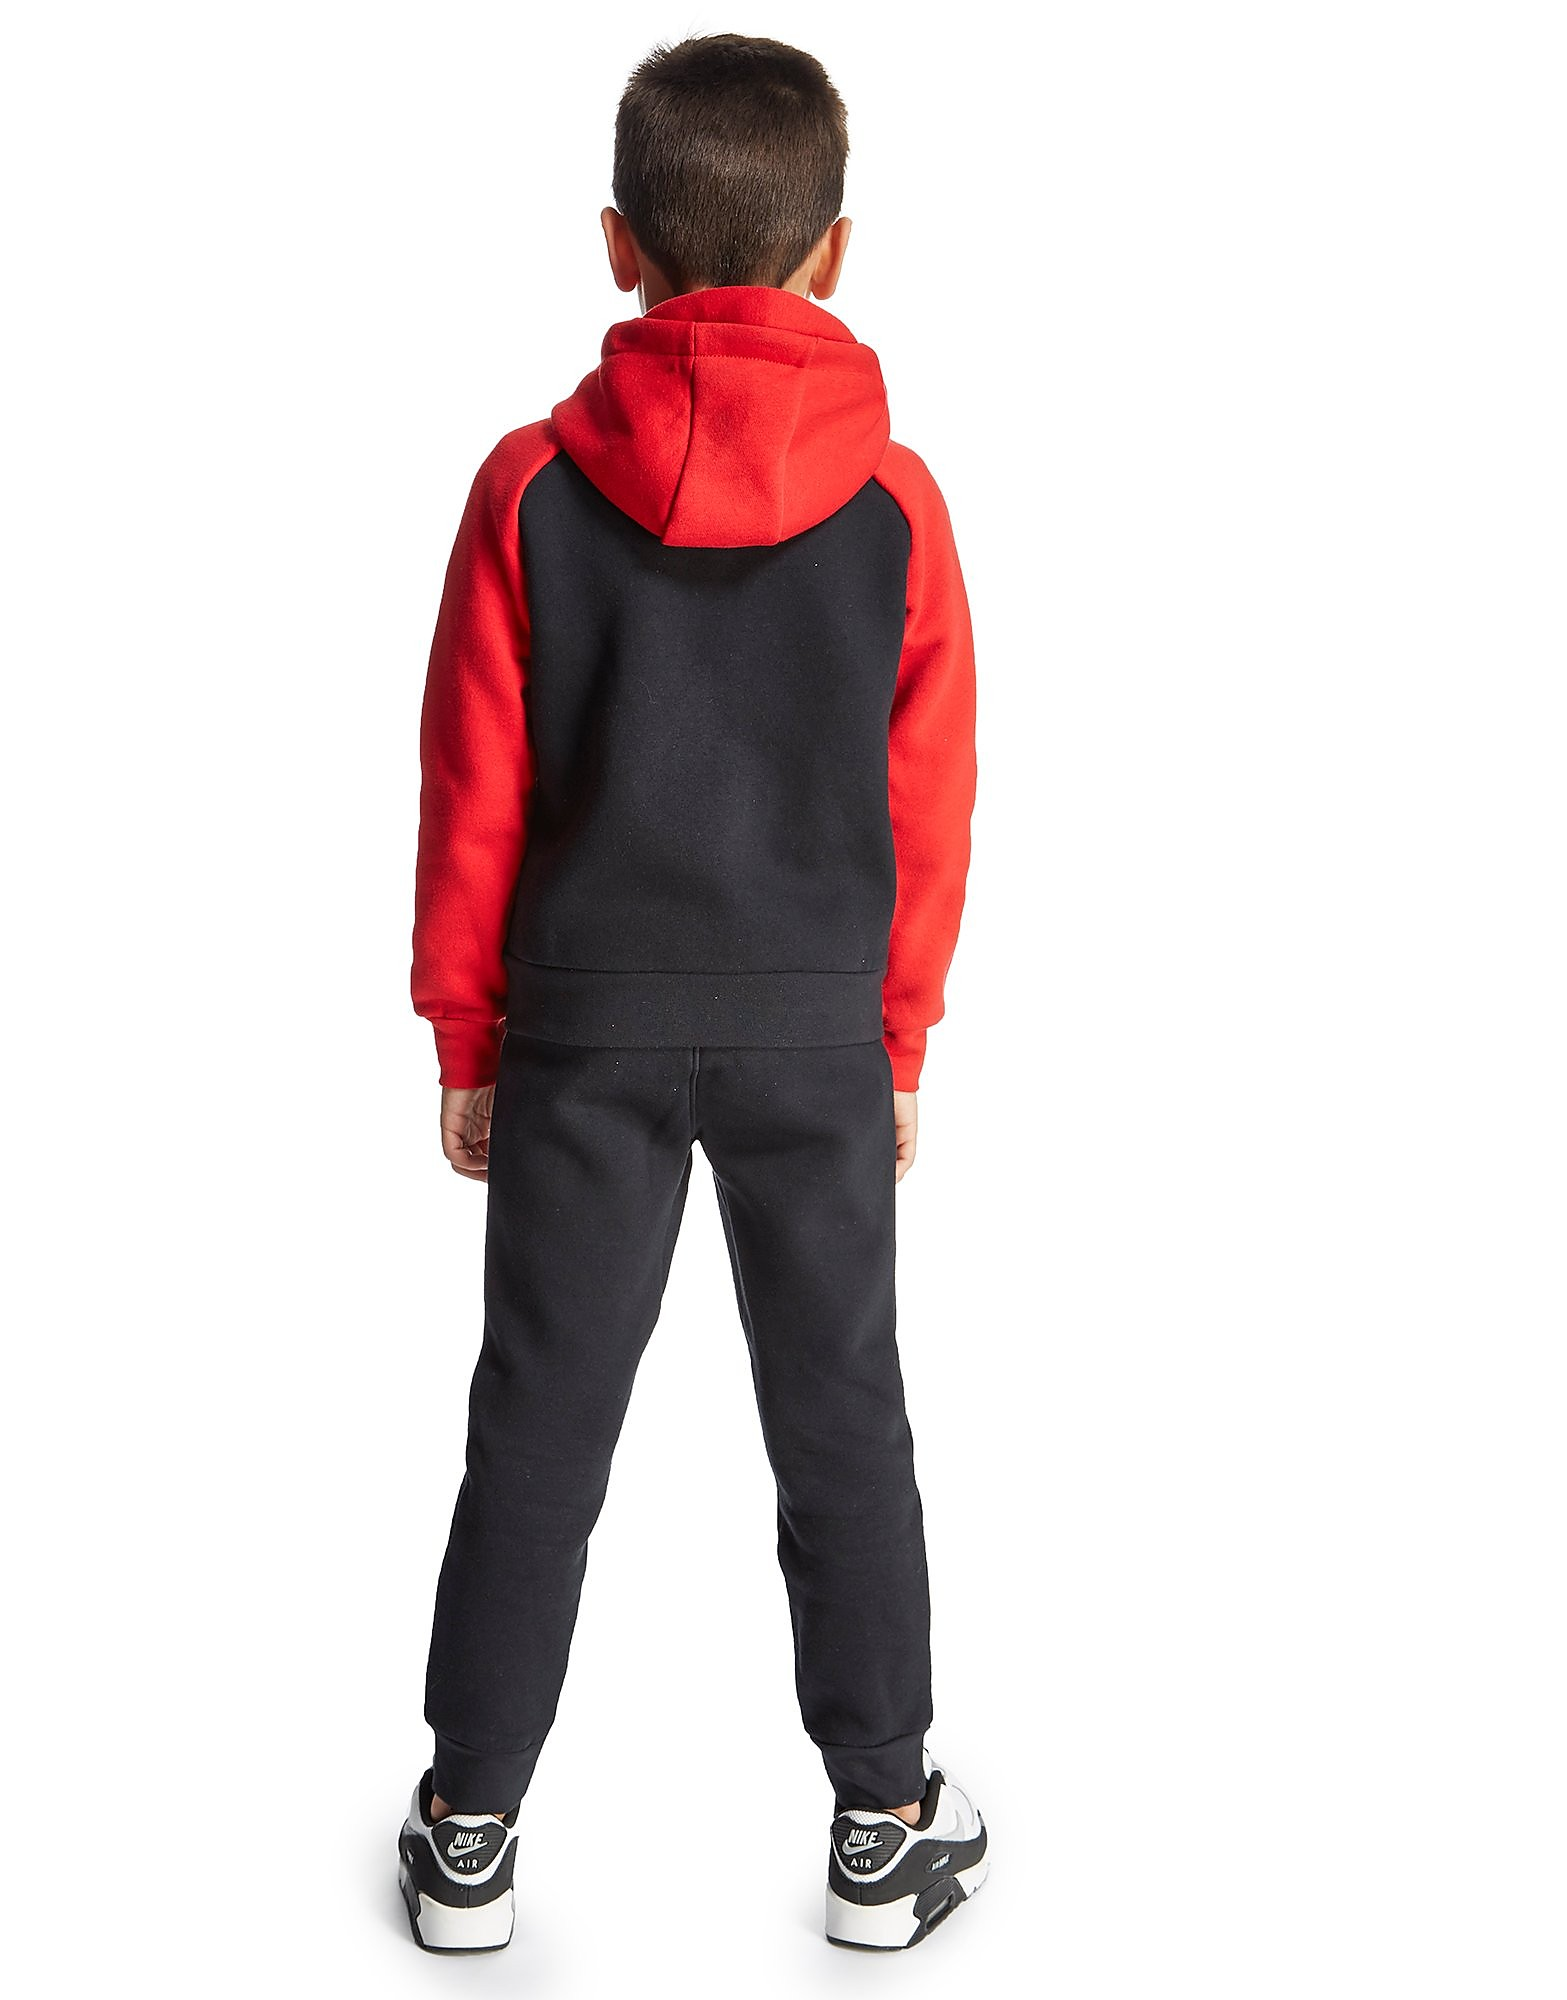 Nike Air Fleece Suit Children